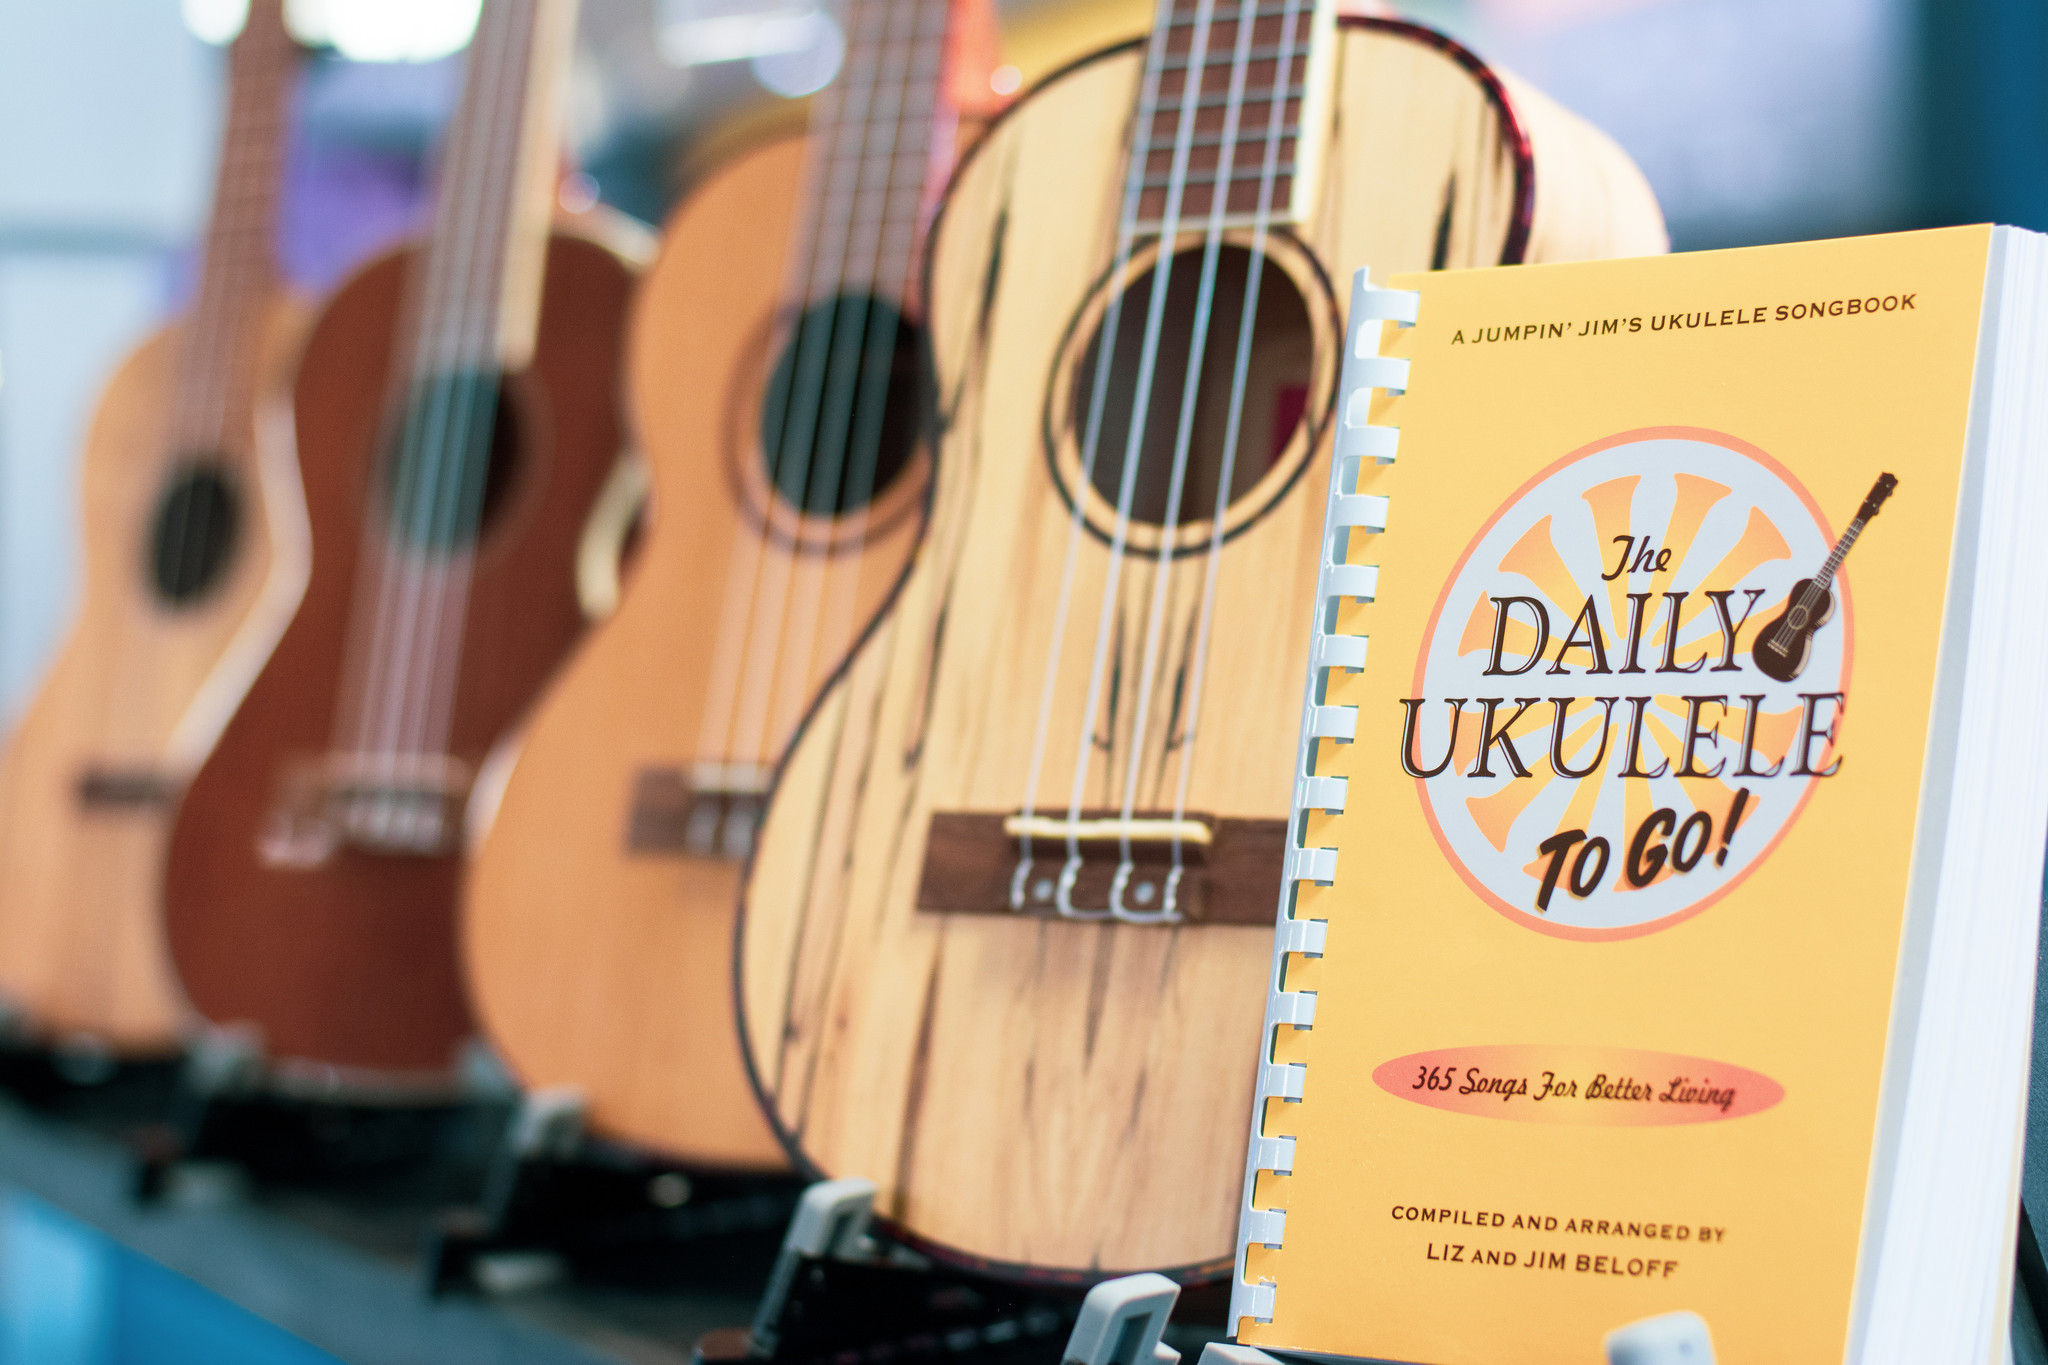 The Uke Life and all you need to live it!